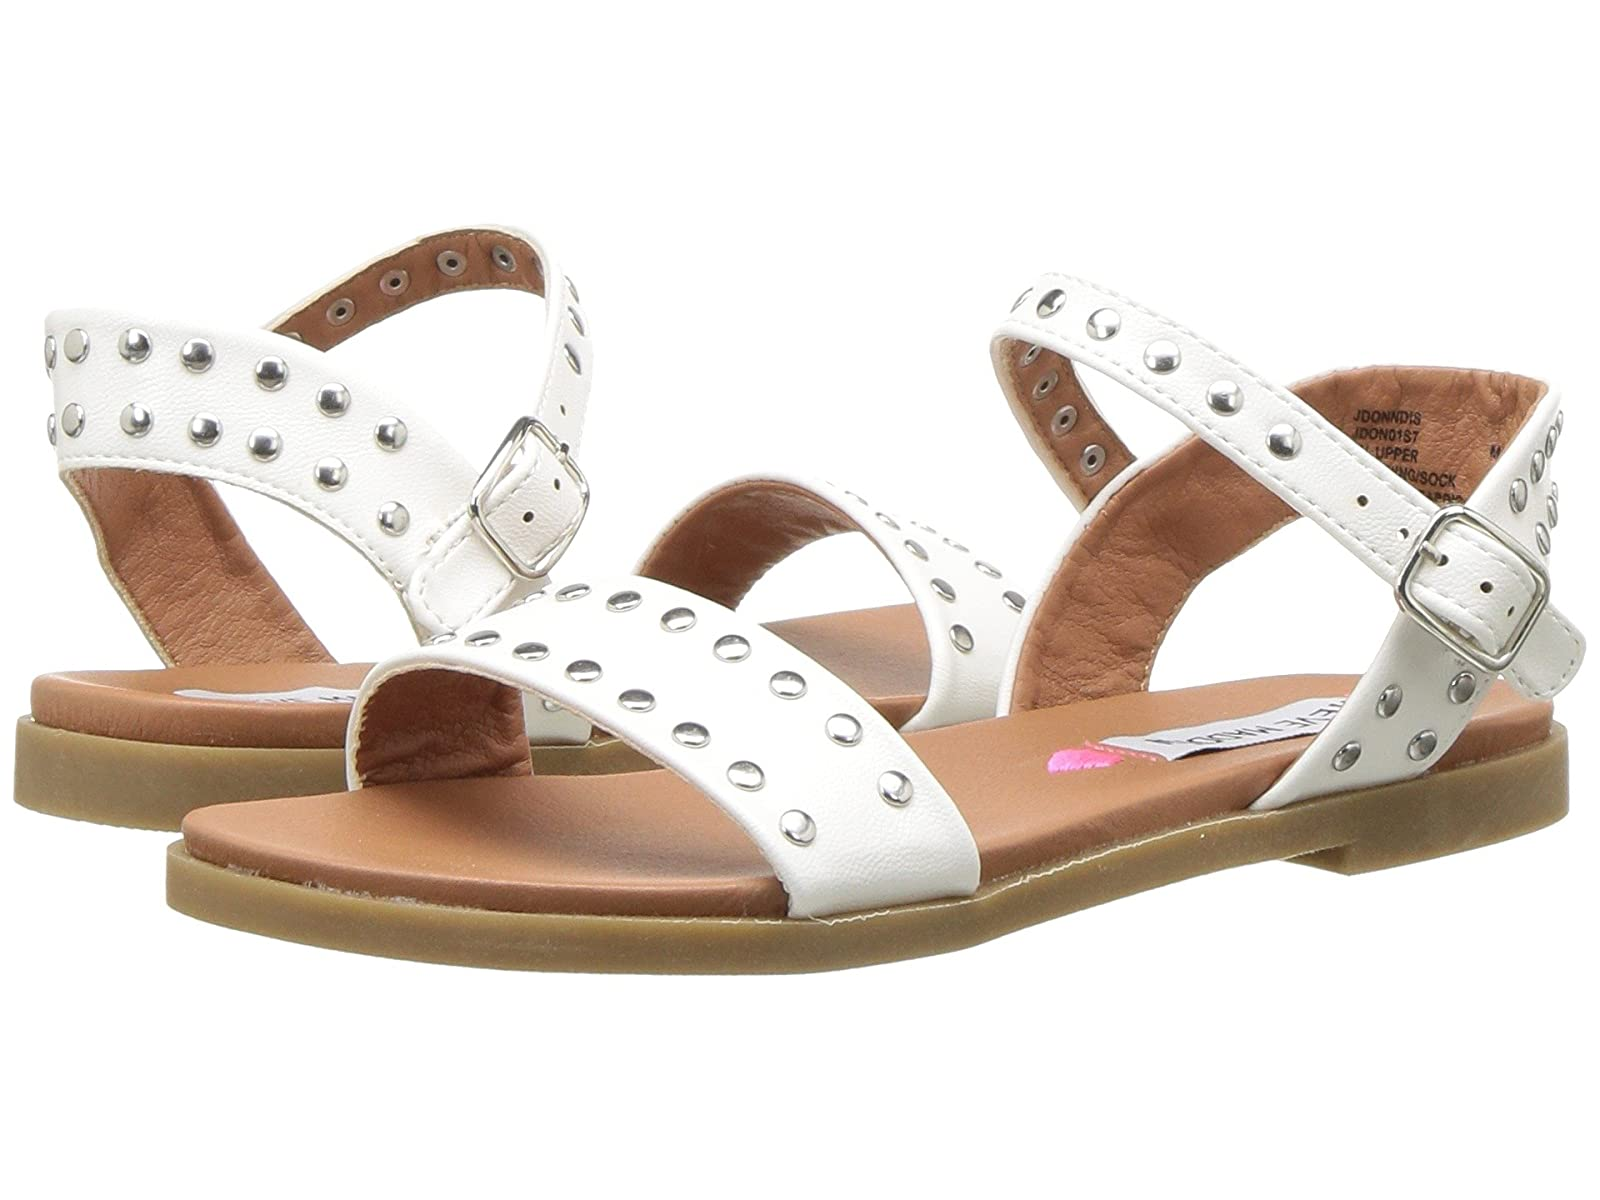 Steve Madden Kids Jdonndi-S (Little Kid/Big Kid)Atmospheric grades have affordable shoes